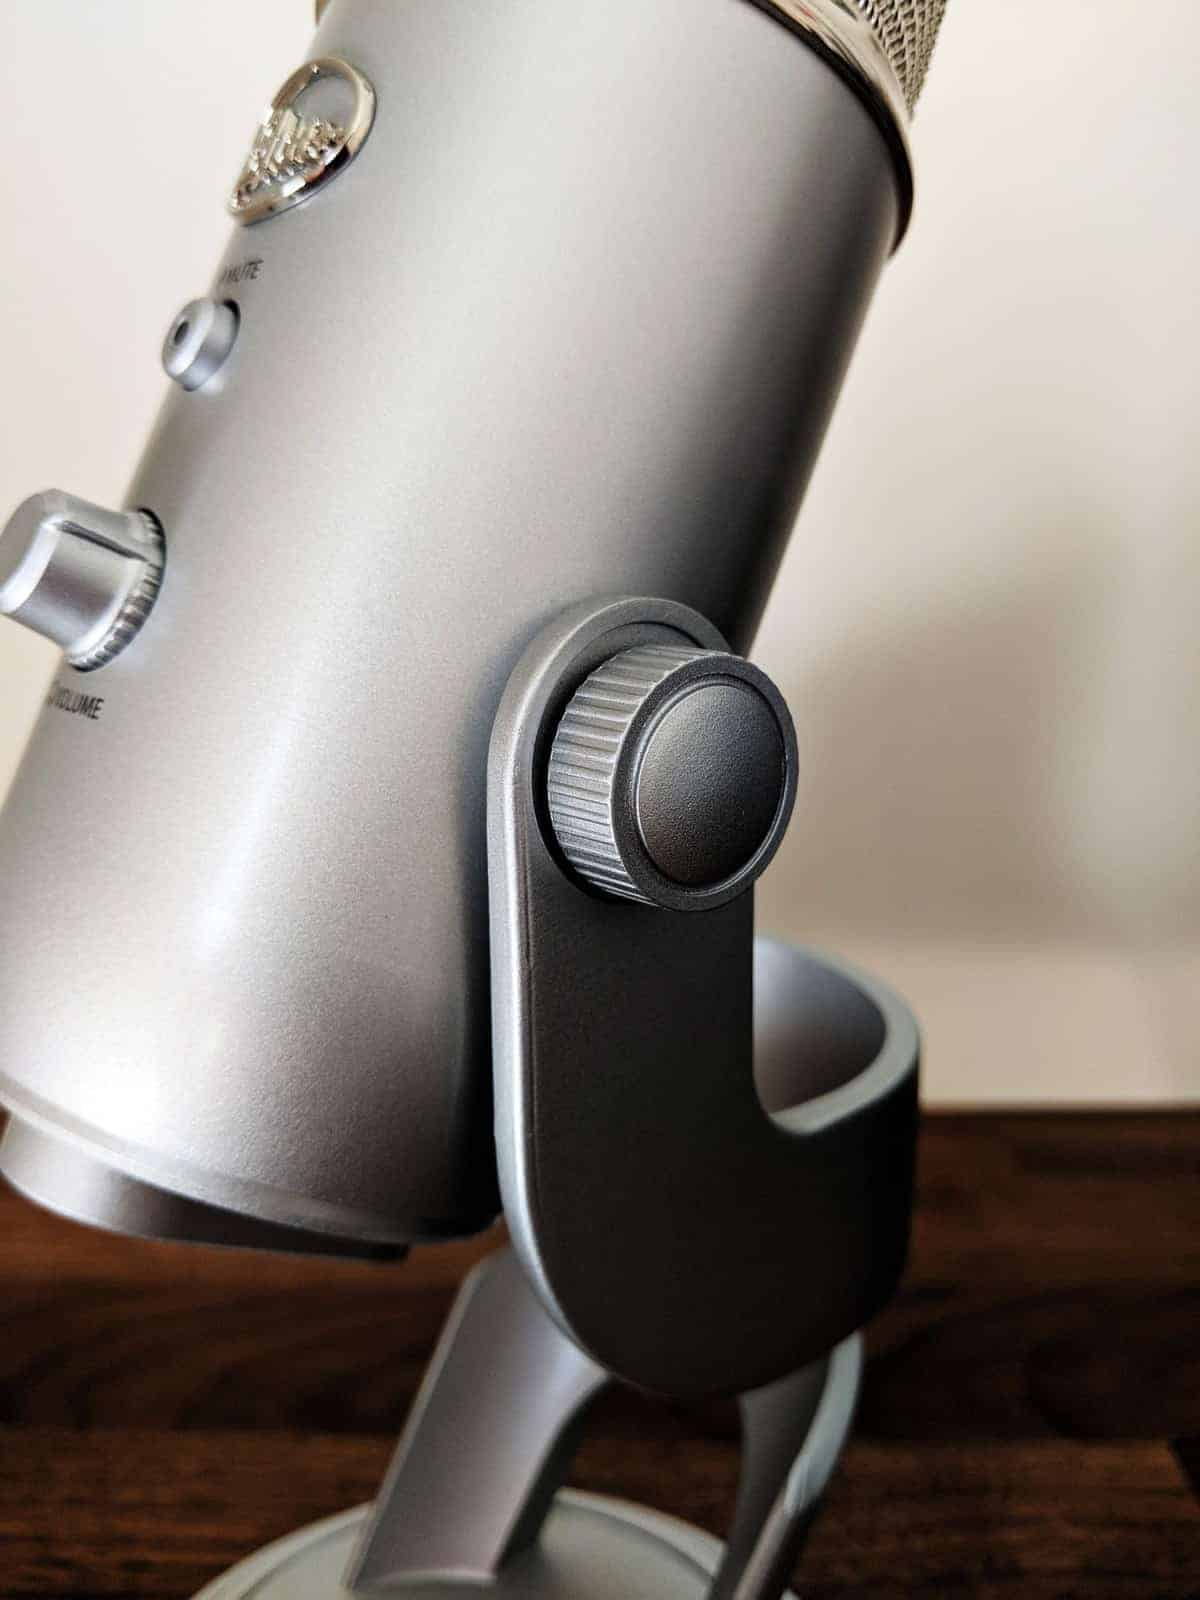 Blue-Yeti-Photos-10 Blue Yeti Microphone Review